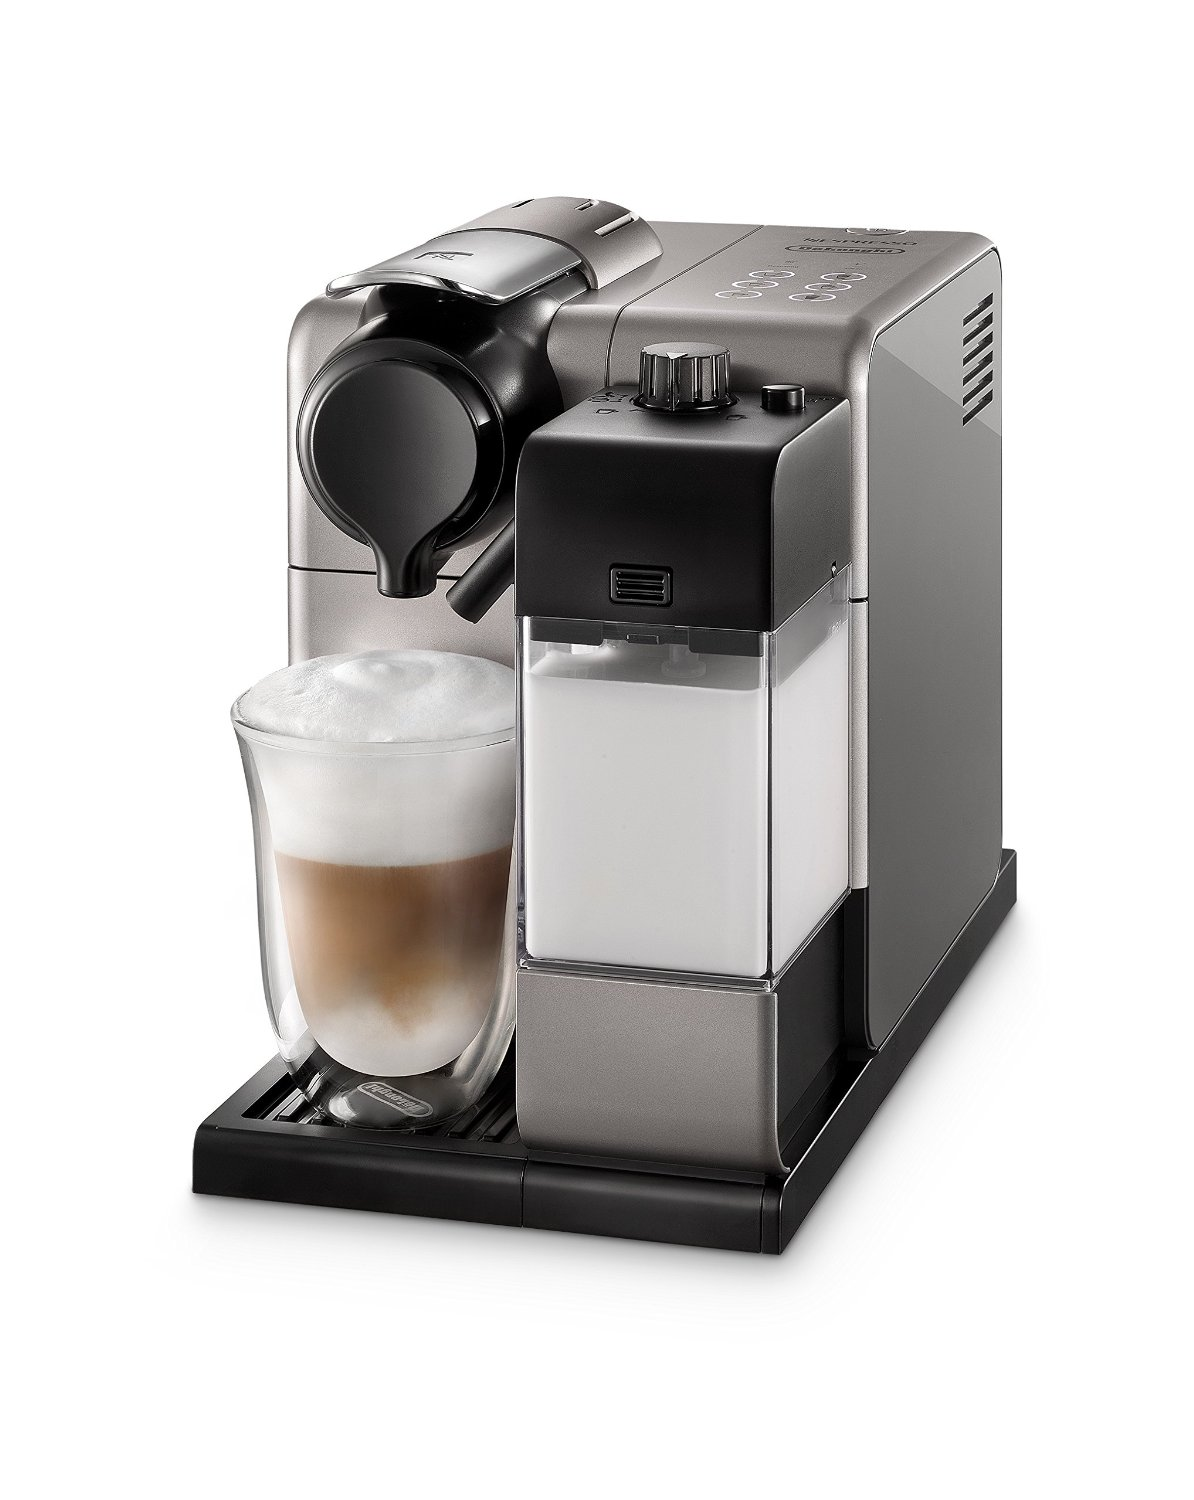 delonghi en550s lattissima touch nespresso espresso maker view on amazon - Delonghi Espresso Machine